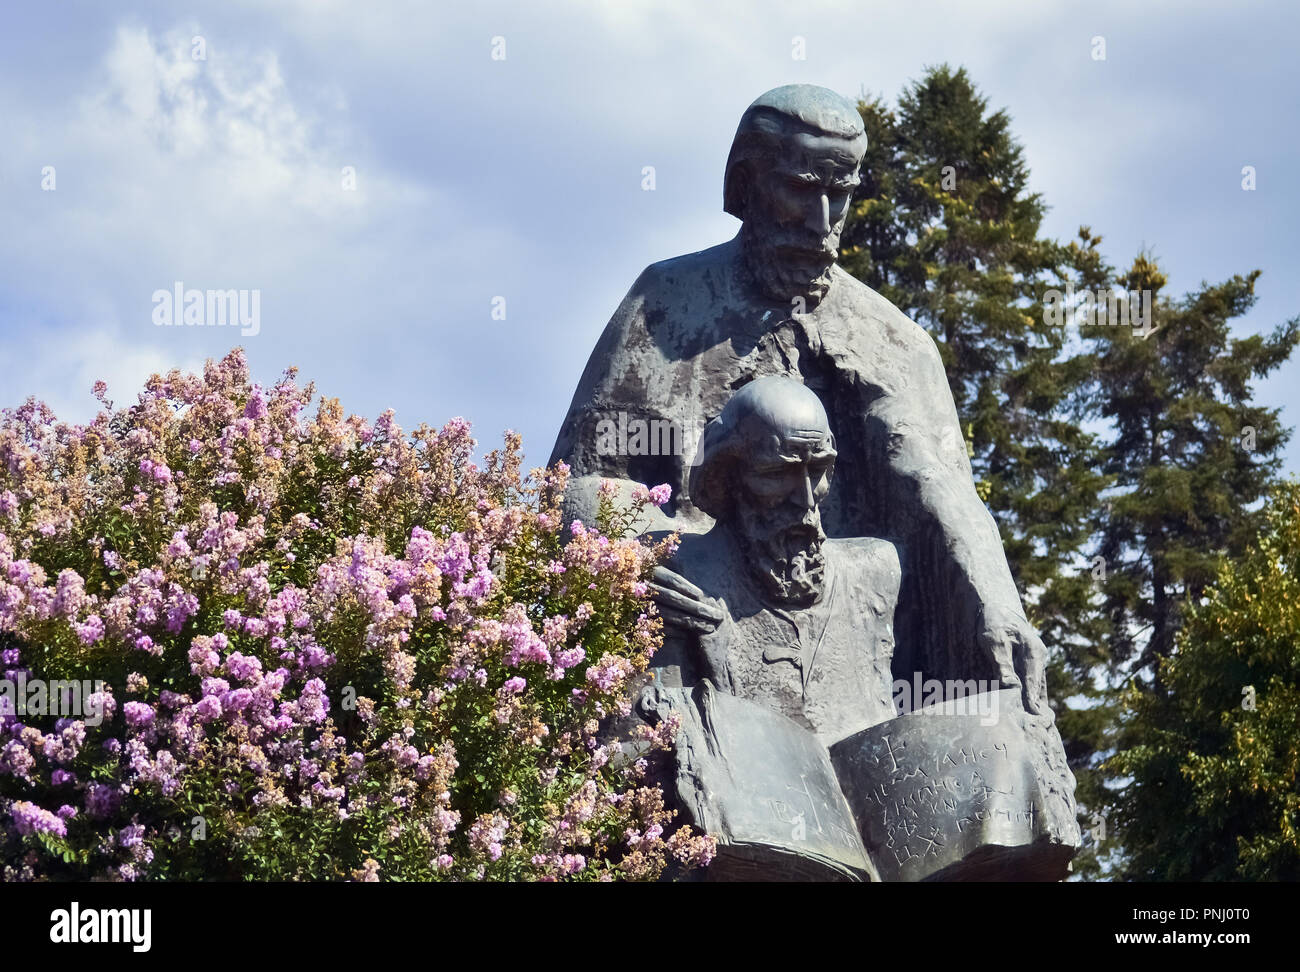 Sculpture of brothers Cyril and Methodius made of stone in Ohrid - Stock Image